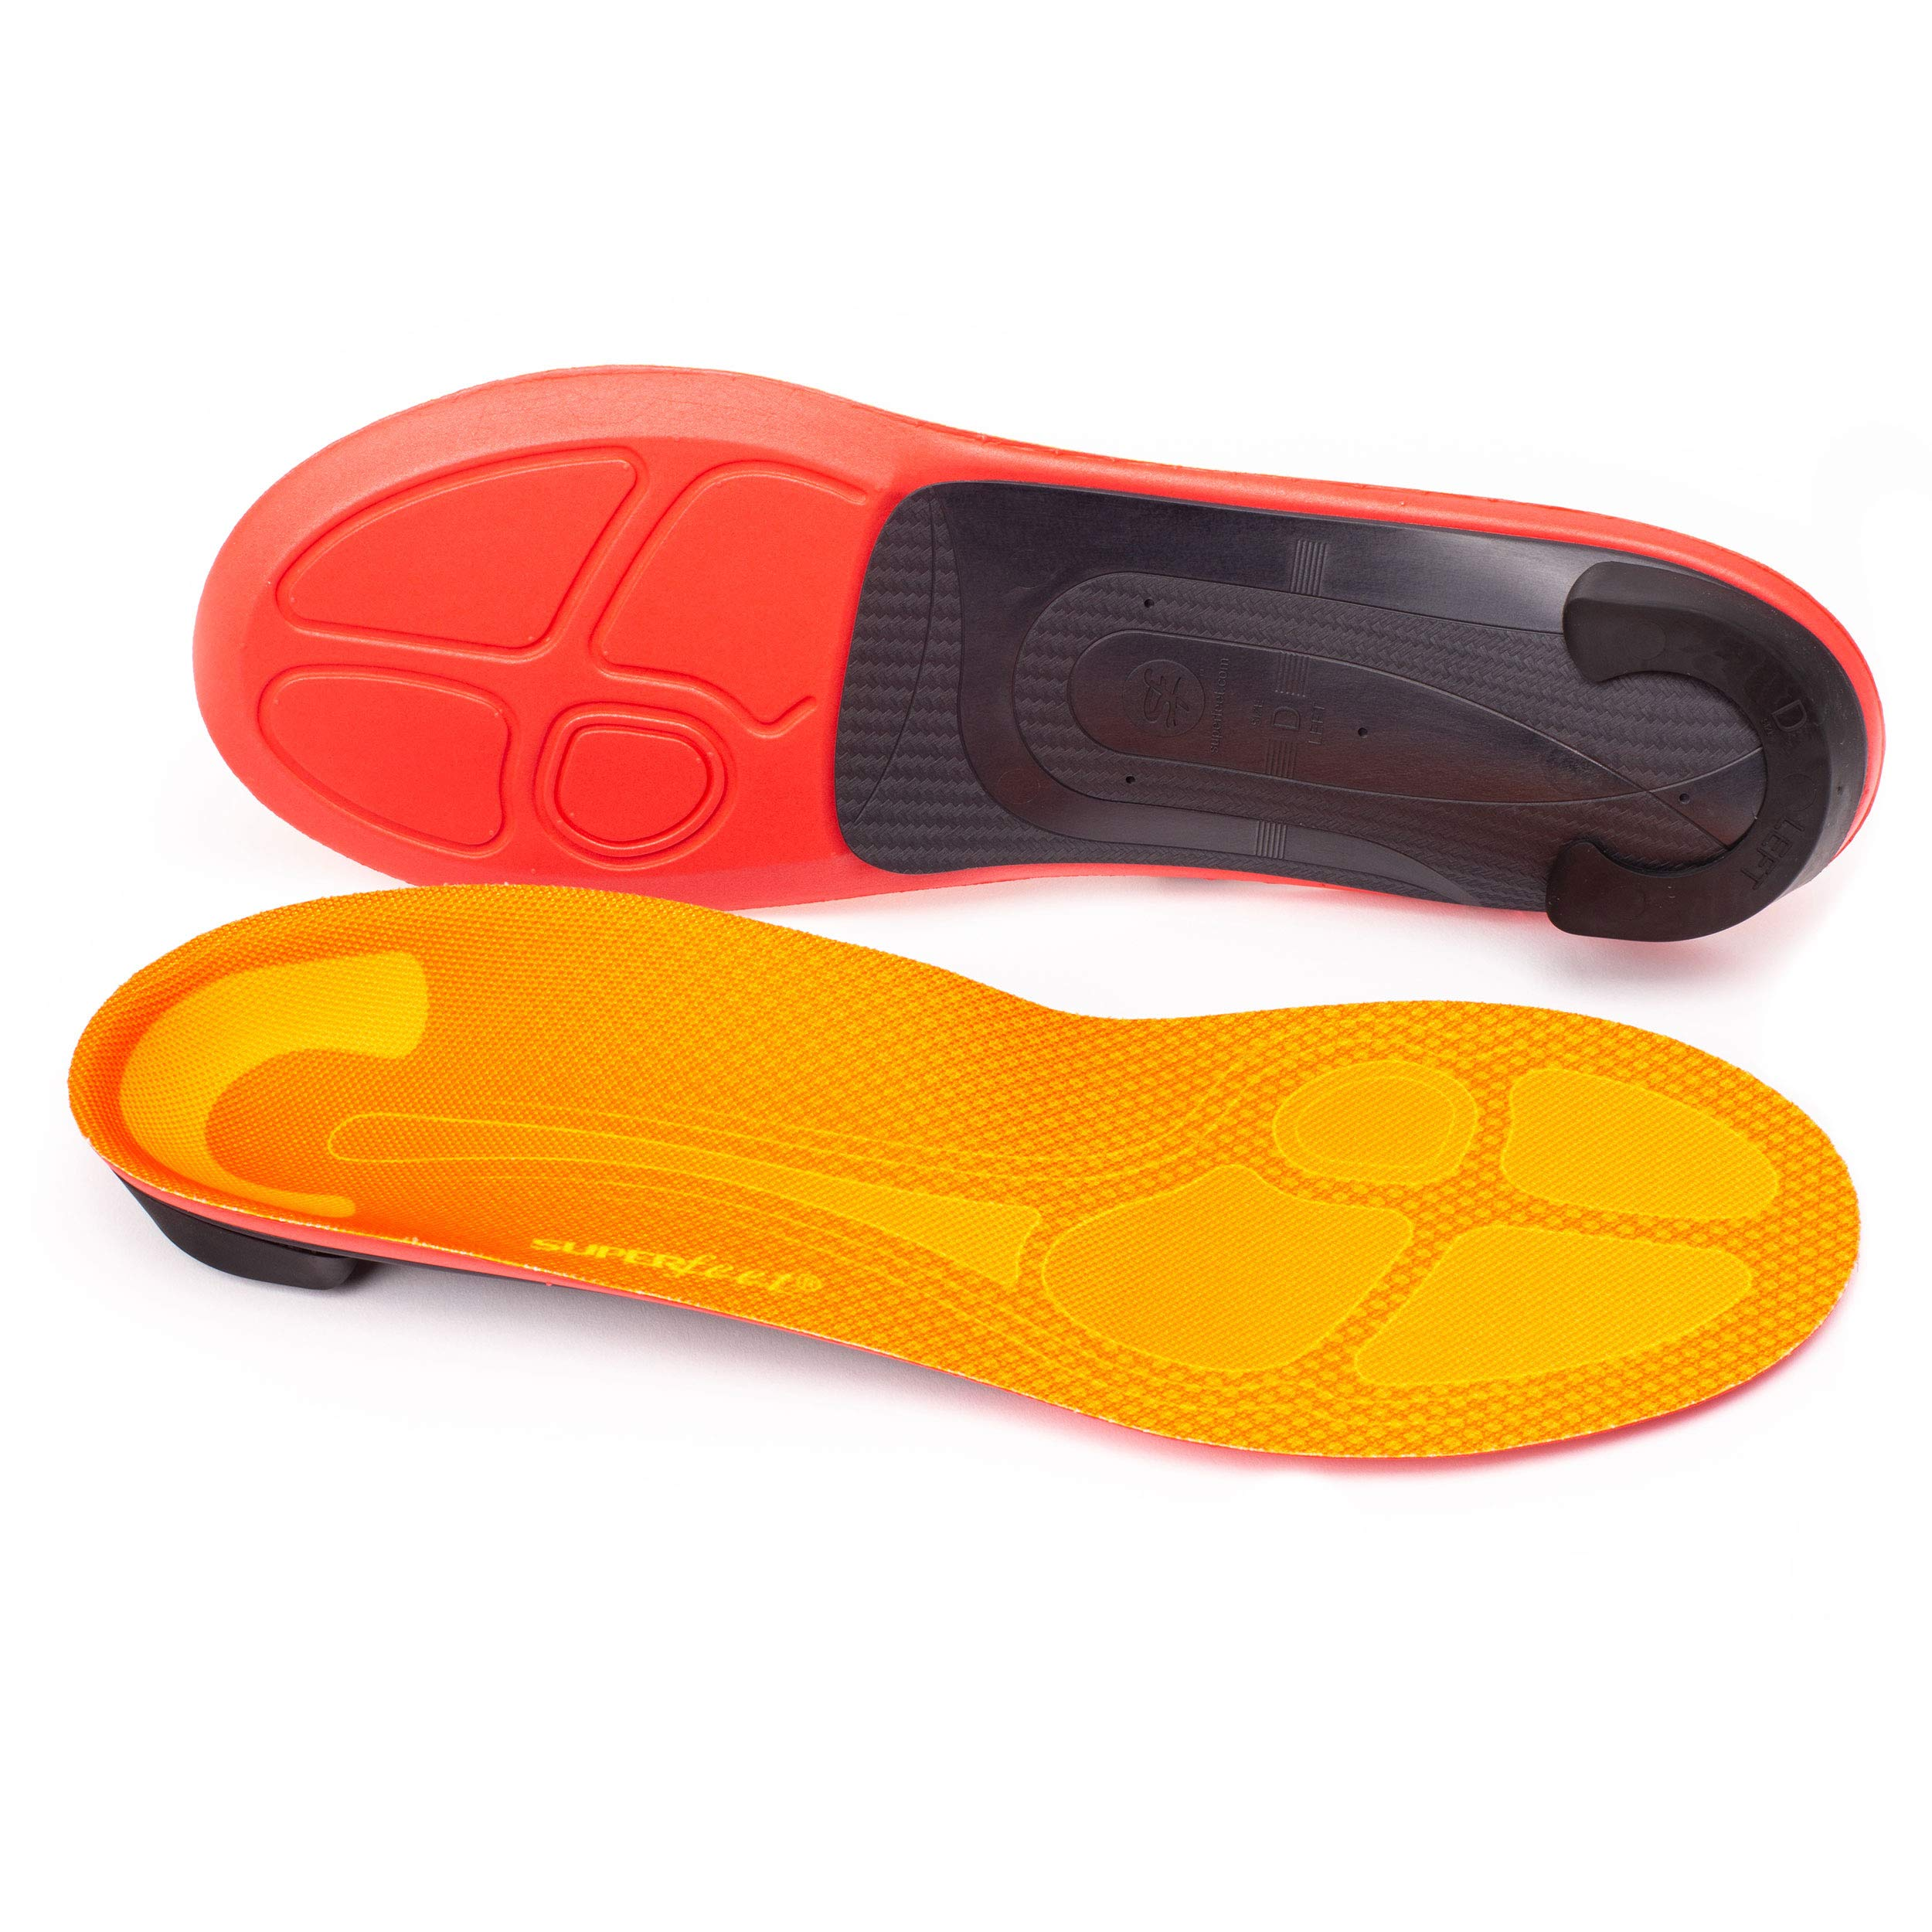 Superfeet Run Pain Relief Insoles, Customizable Heel Stability Professional-Grade Orthotic Insert for Maximum Support, Tangerine, E: 10.5-12 US Womens / 9.5-11 US Mens by Superfeet